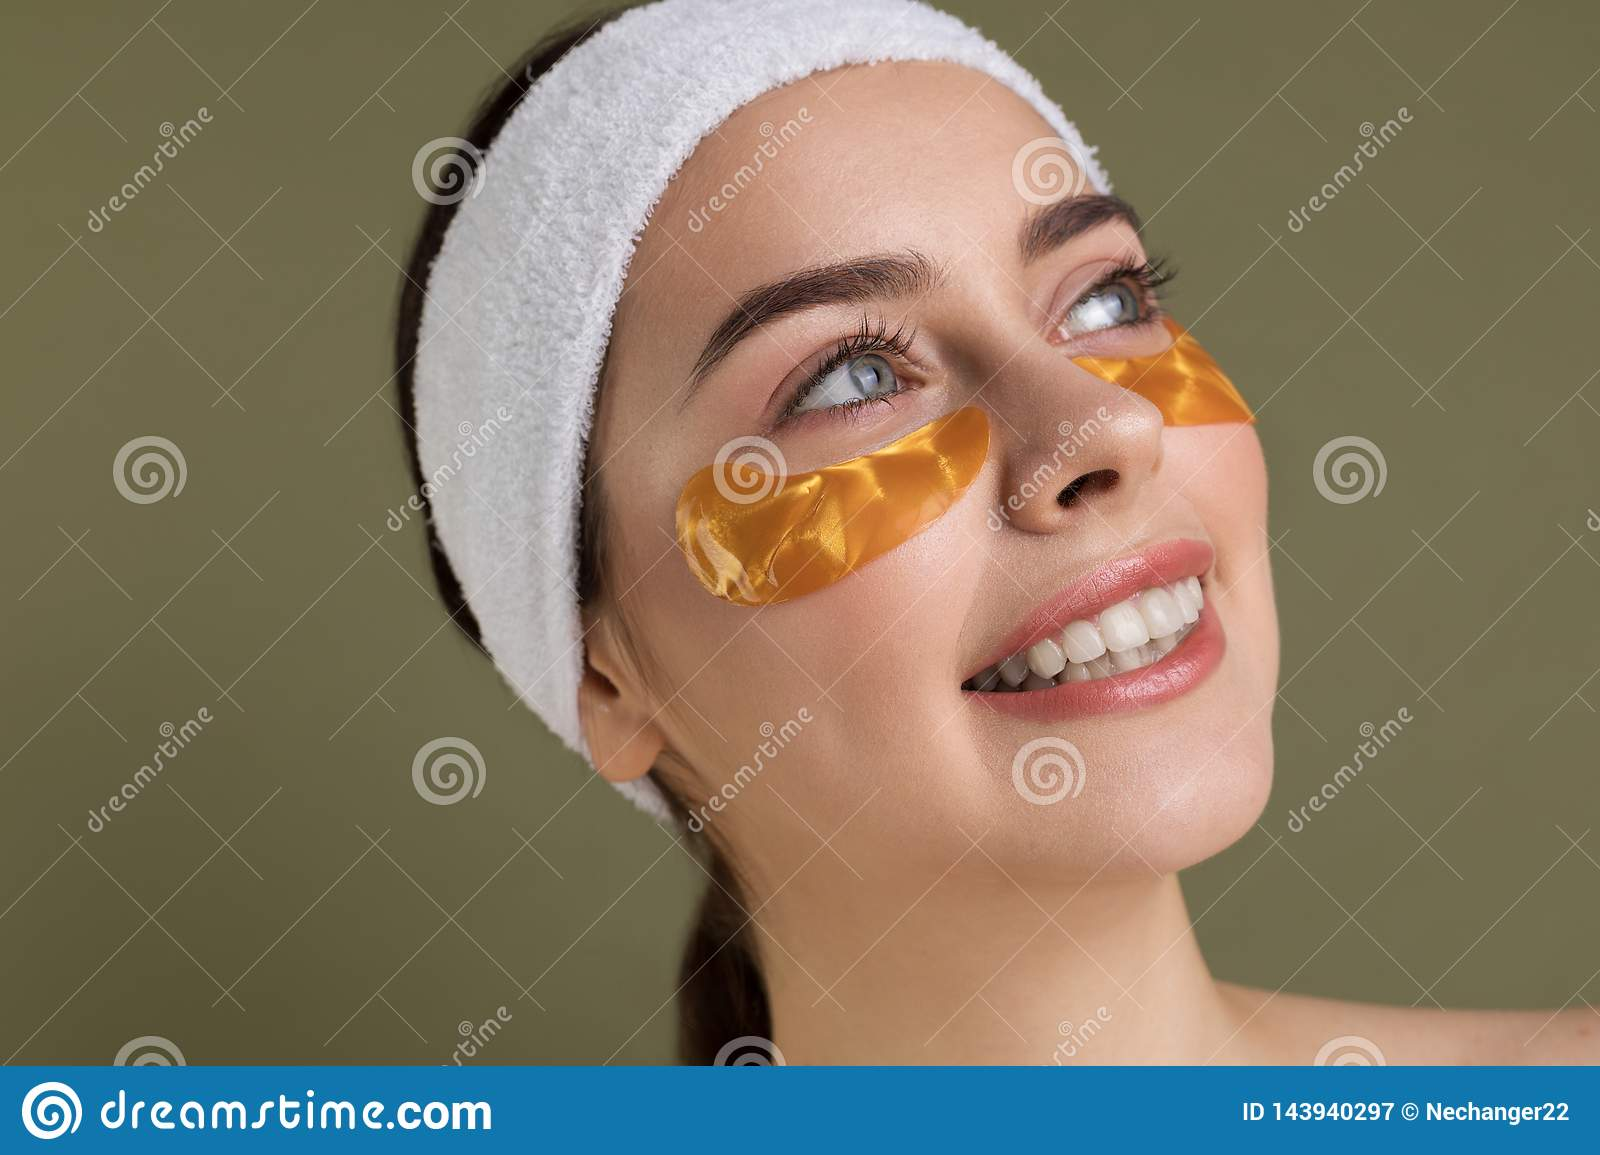 Close up portrait of happy smiling girl with patches under eyes from wrinkles and dark cicles